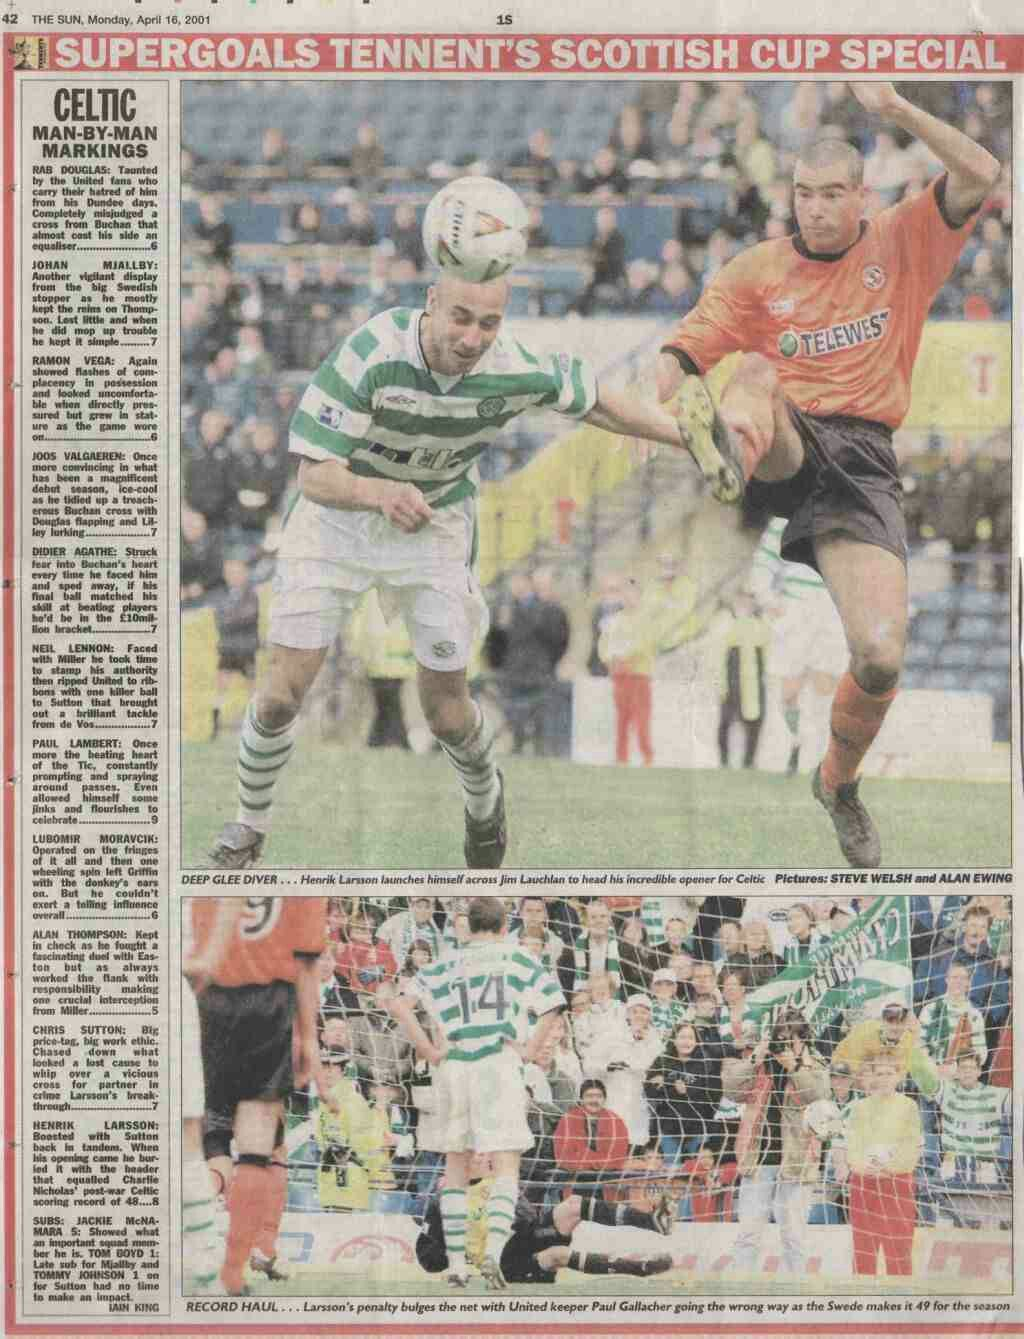 Celtic 3 Dundee Utd 1 in April 2001 at Hampden Park. Report from a newspaper on the Scottish Cup Semi Final.